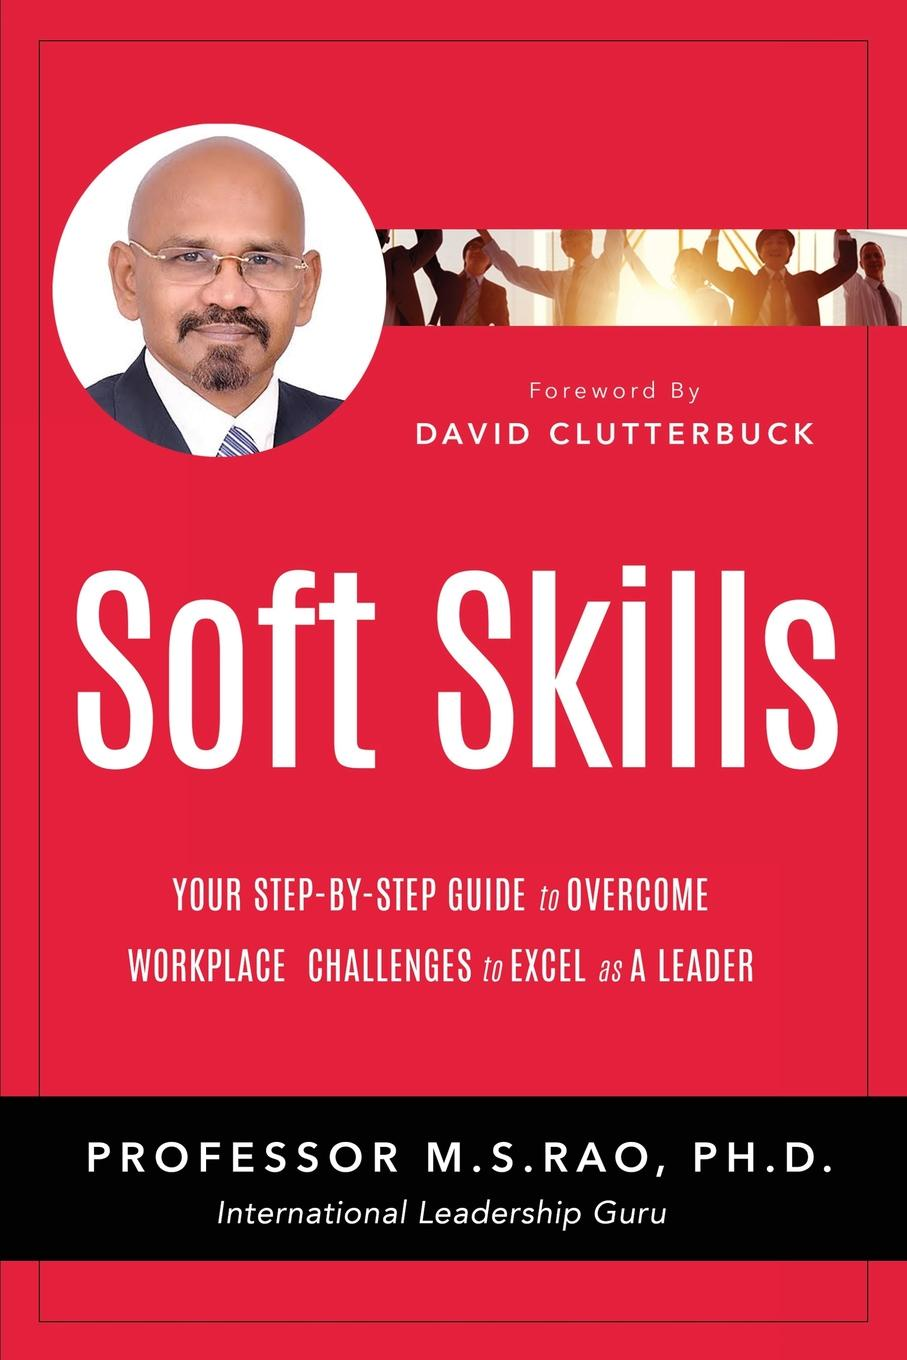 M.S. Rao Soft Skills. Your Step by Step Guide to Overcome Workplace Challenges to Excel as A Leader paige haber curran emotionally intelligent leadership a guide for students